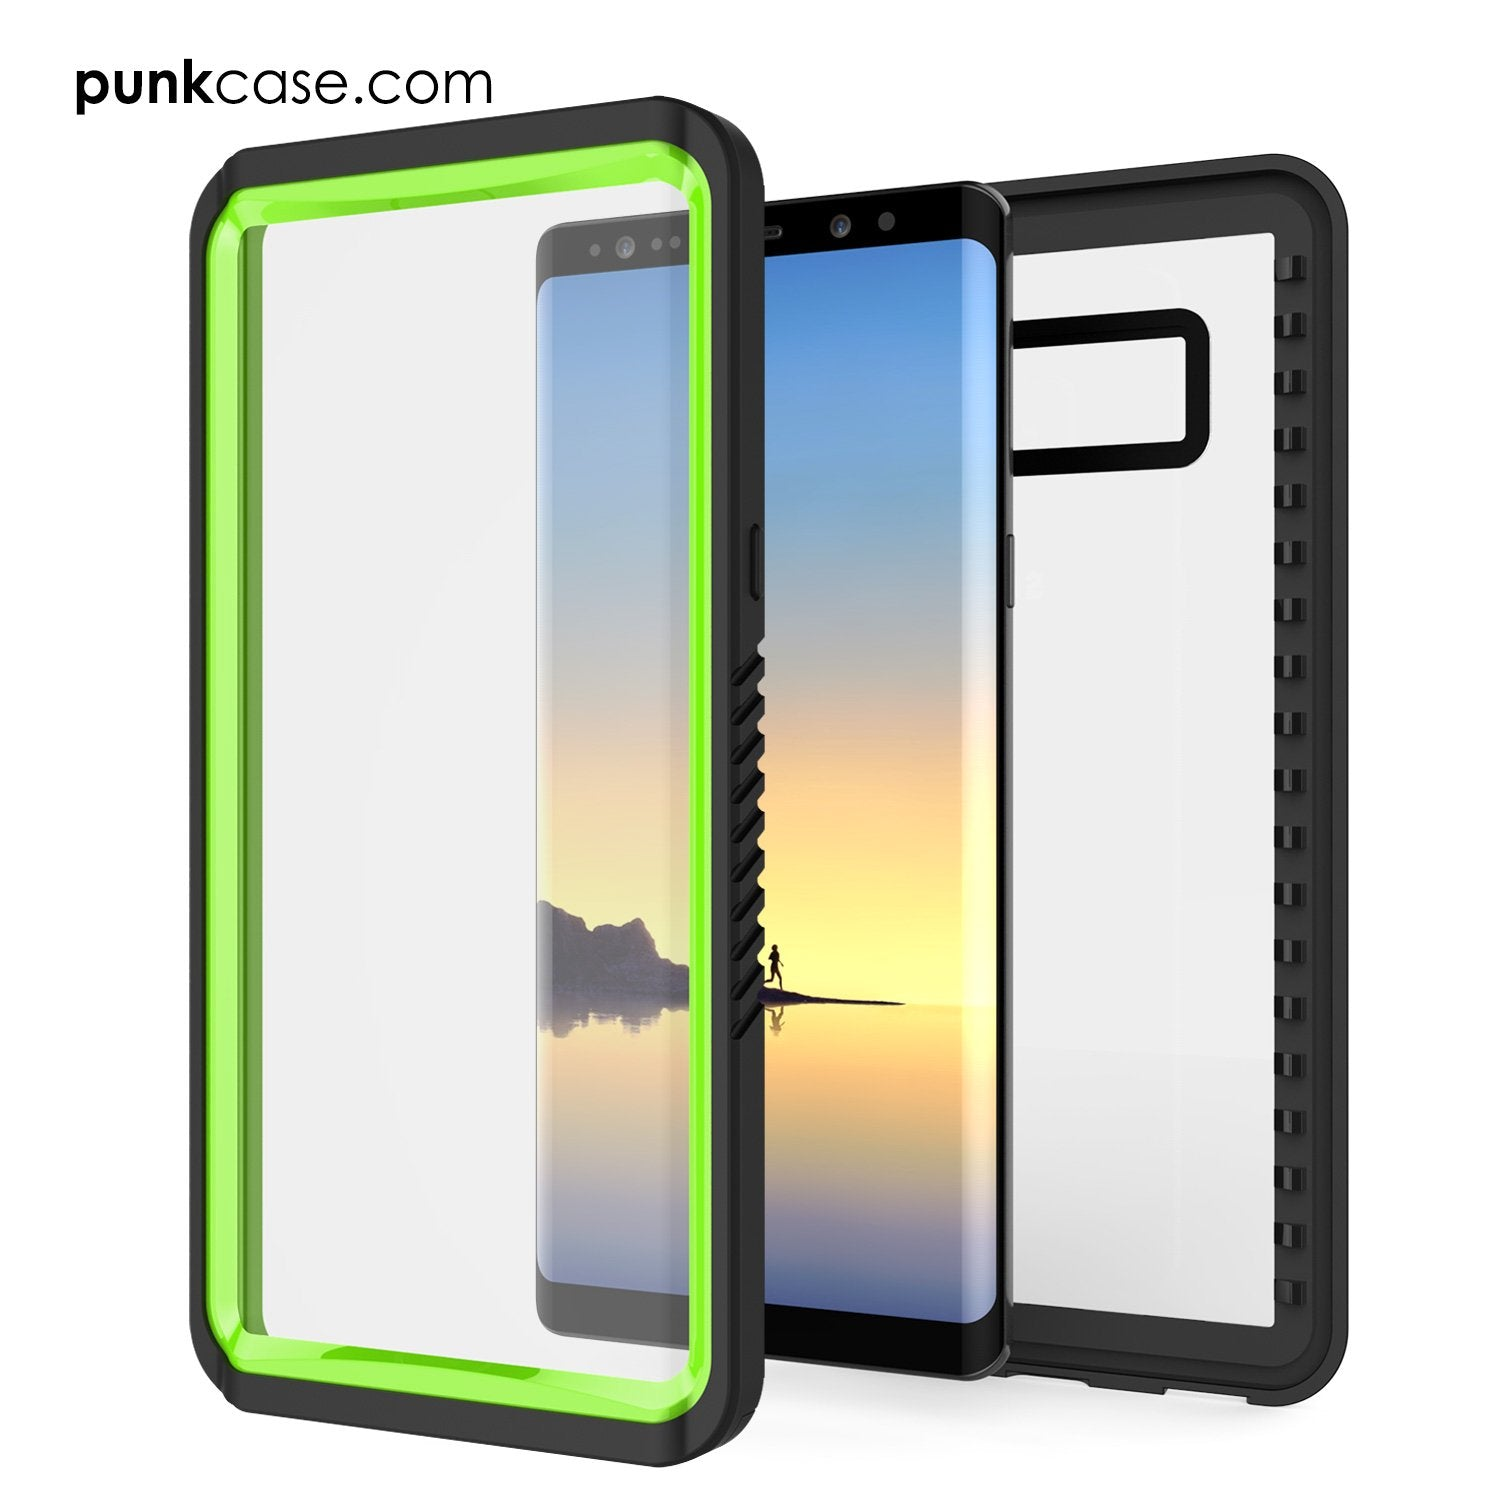 Galaxy Note 8 Case, Punkcase [Extreme Series] [Slim Fit] [IP68 Certified] [Shockproof] Armor Cover W/ Built In Screen Protector [Light Green]